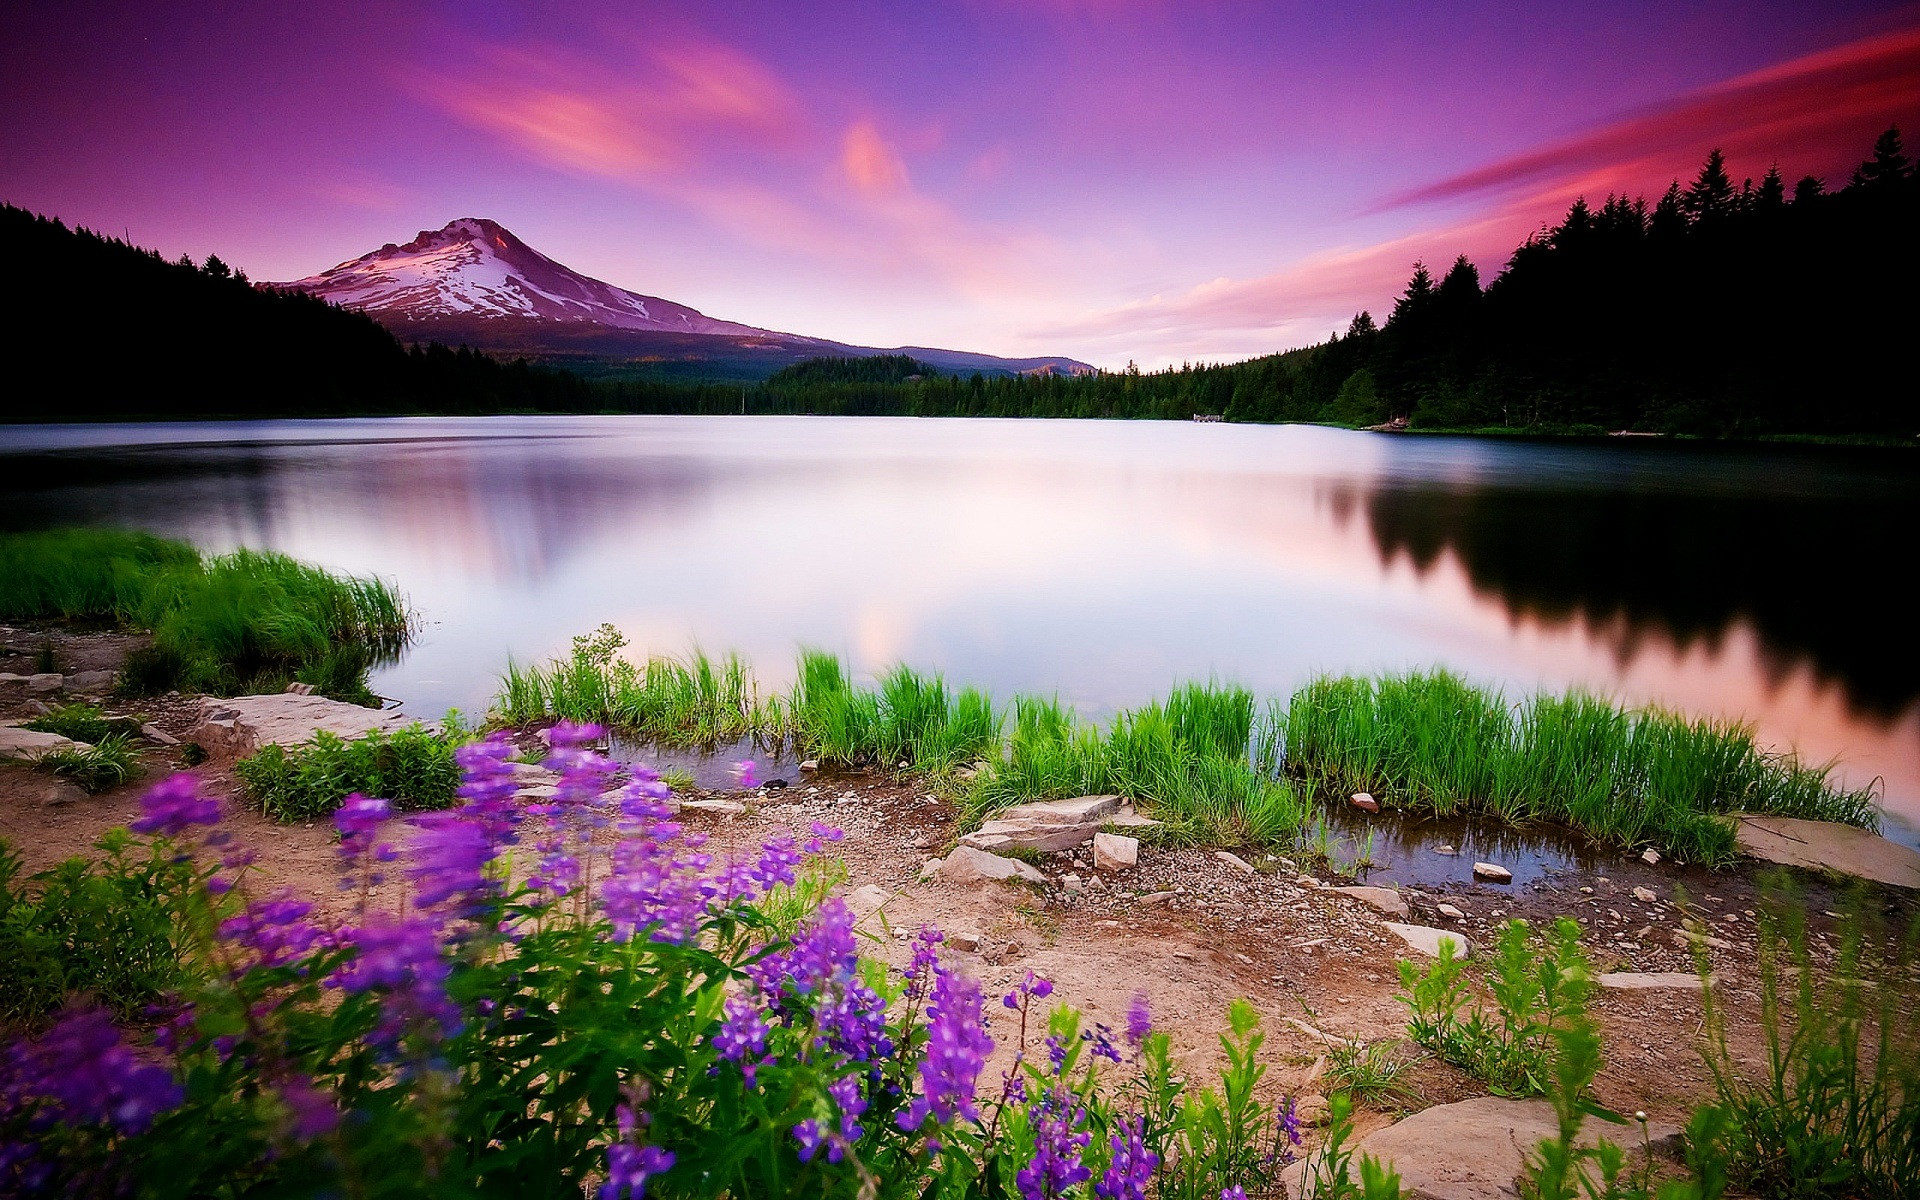 Beautiful landscape photo